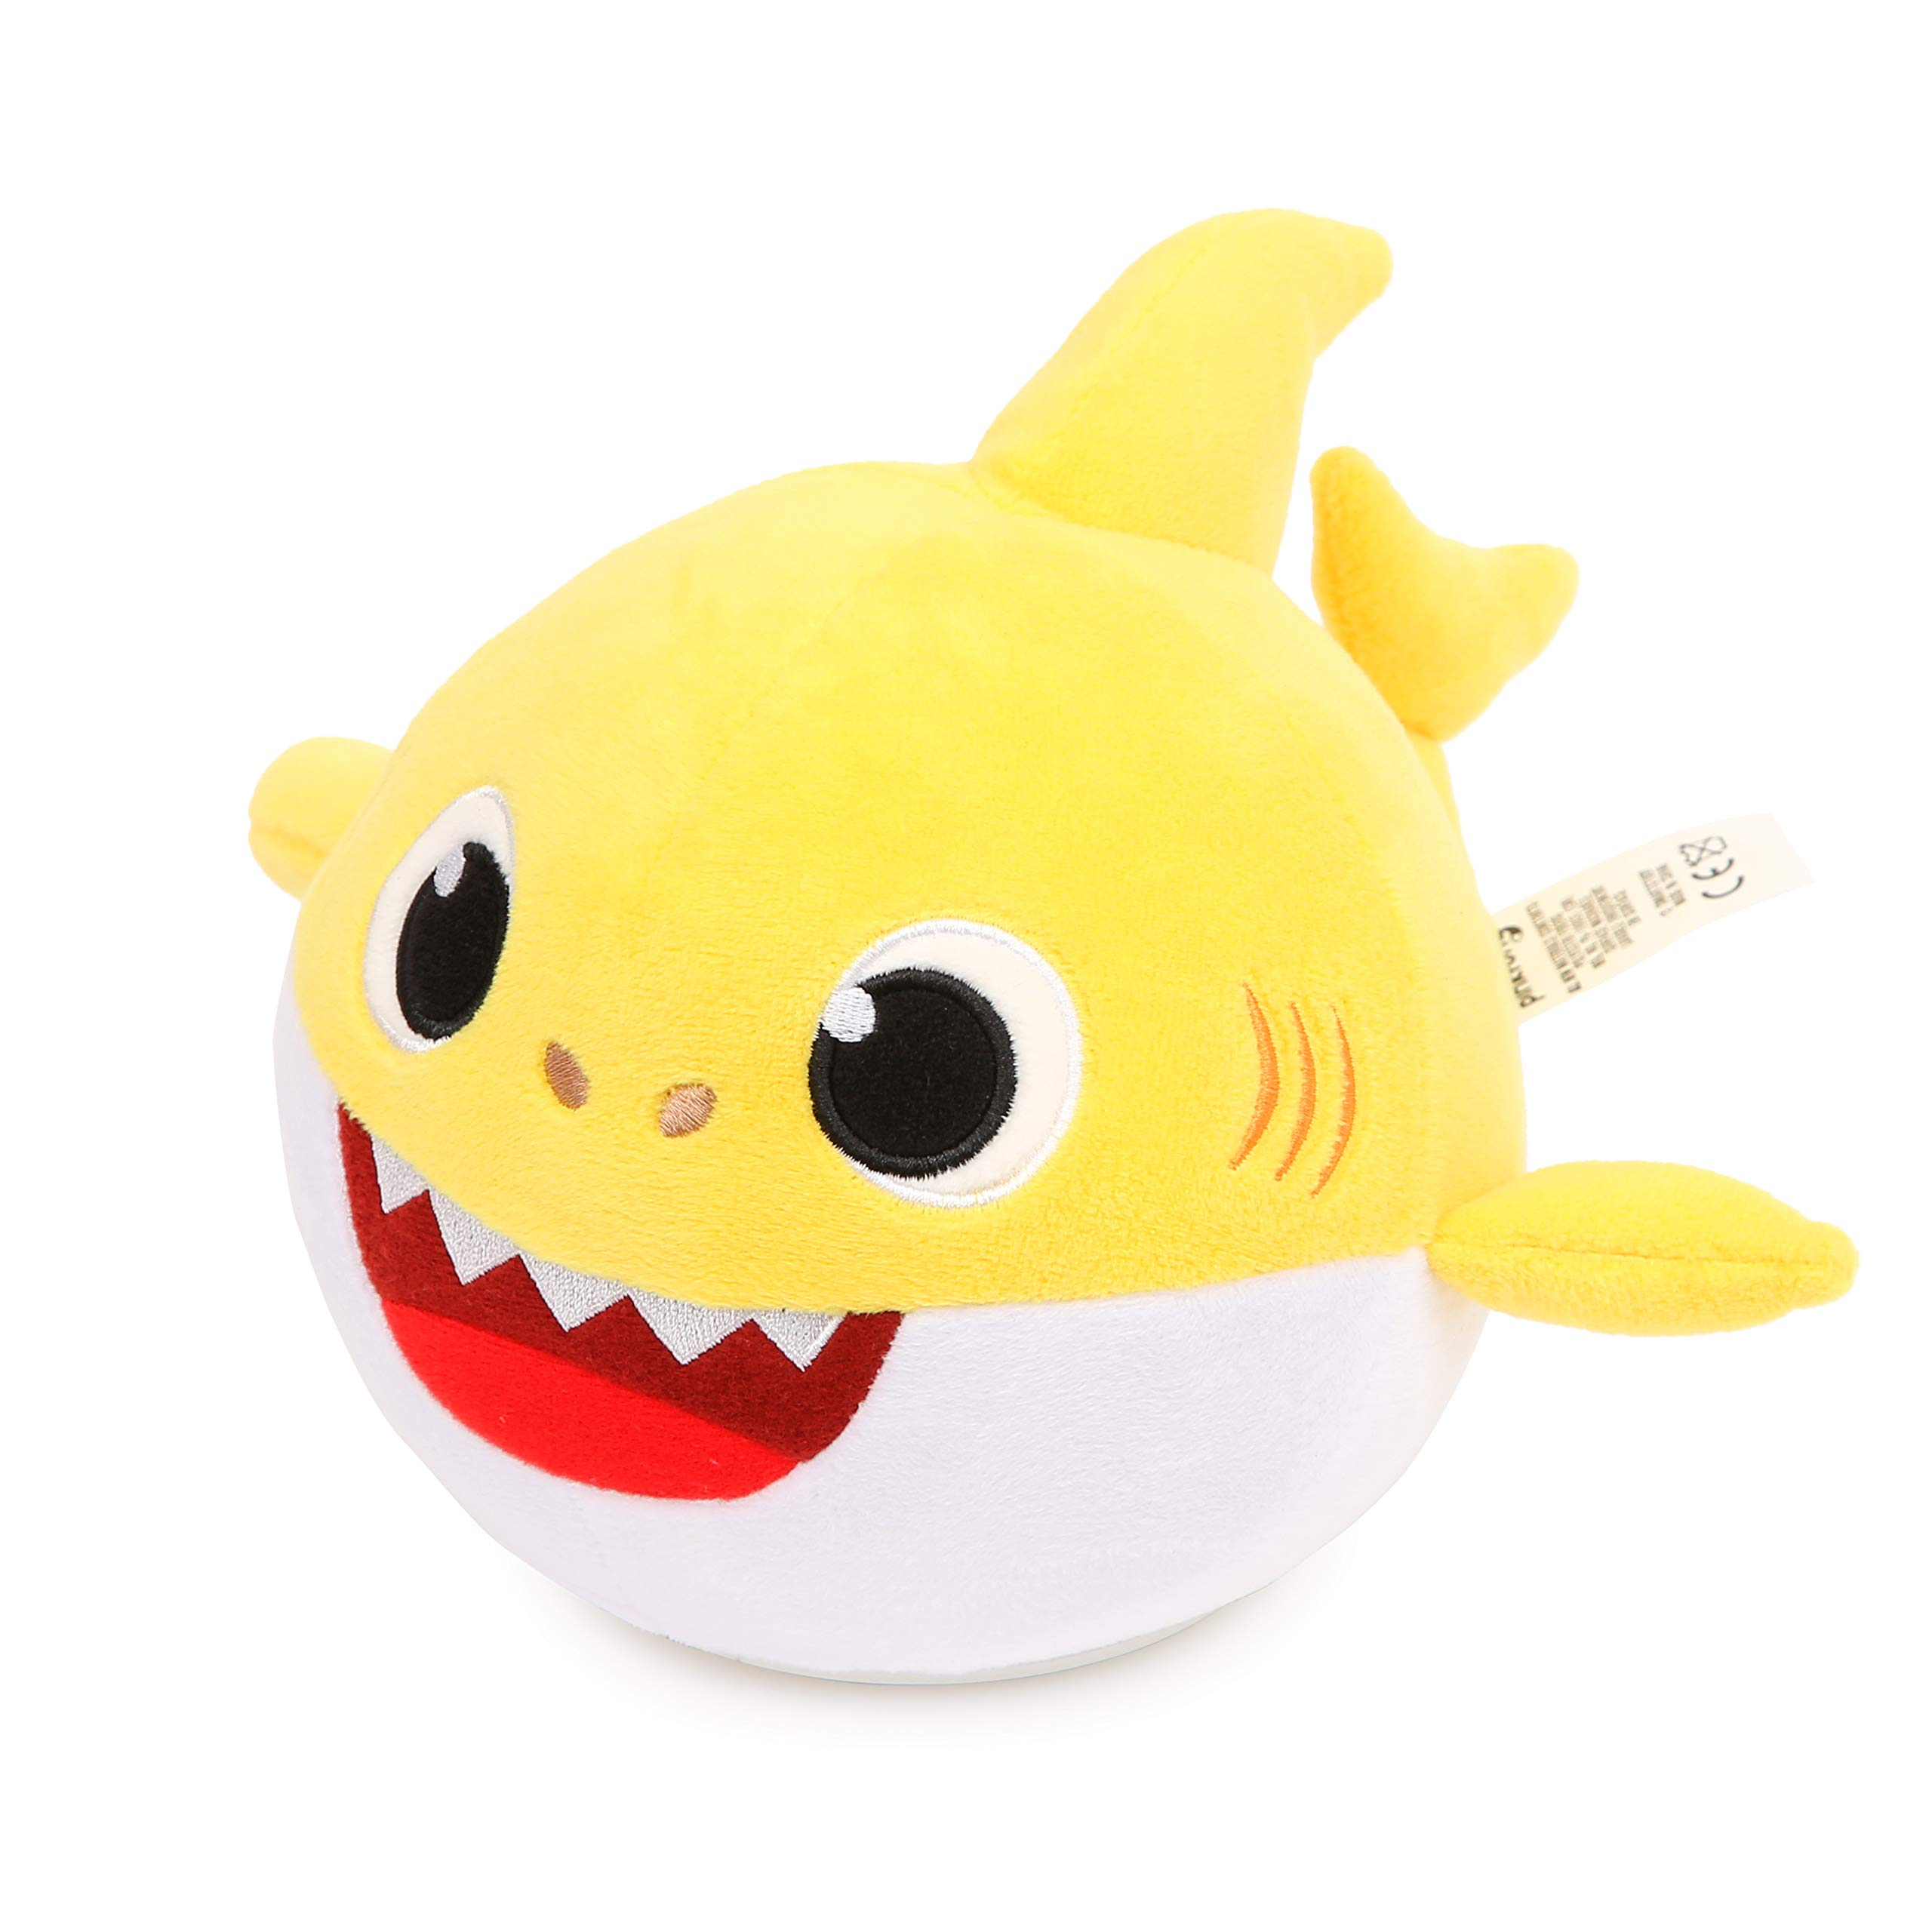 Pinkfong Baby Shark Official Spinning and Singing Interactive Plush Toy by Pinkfong